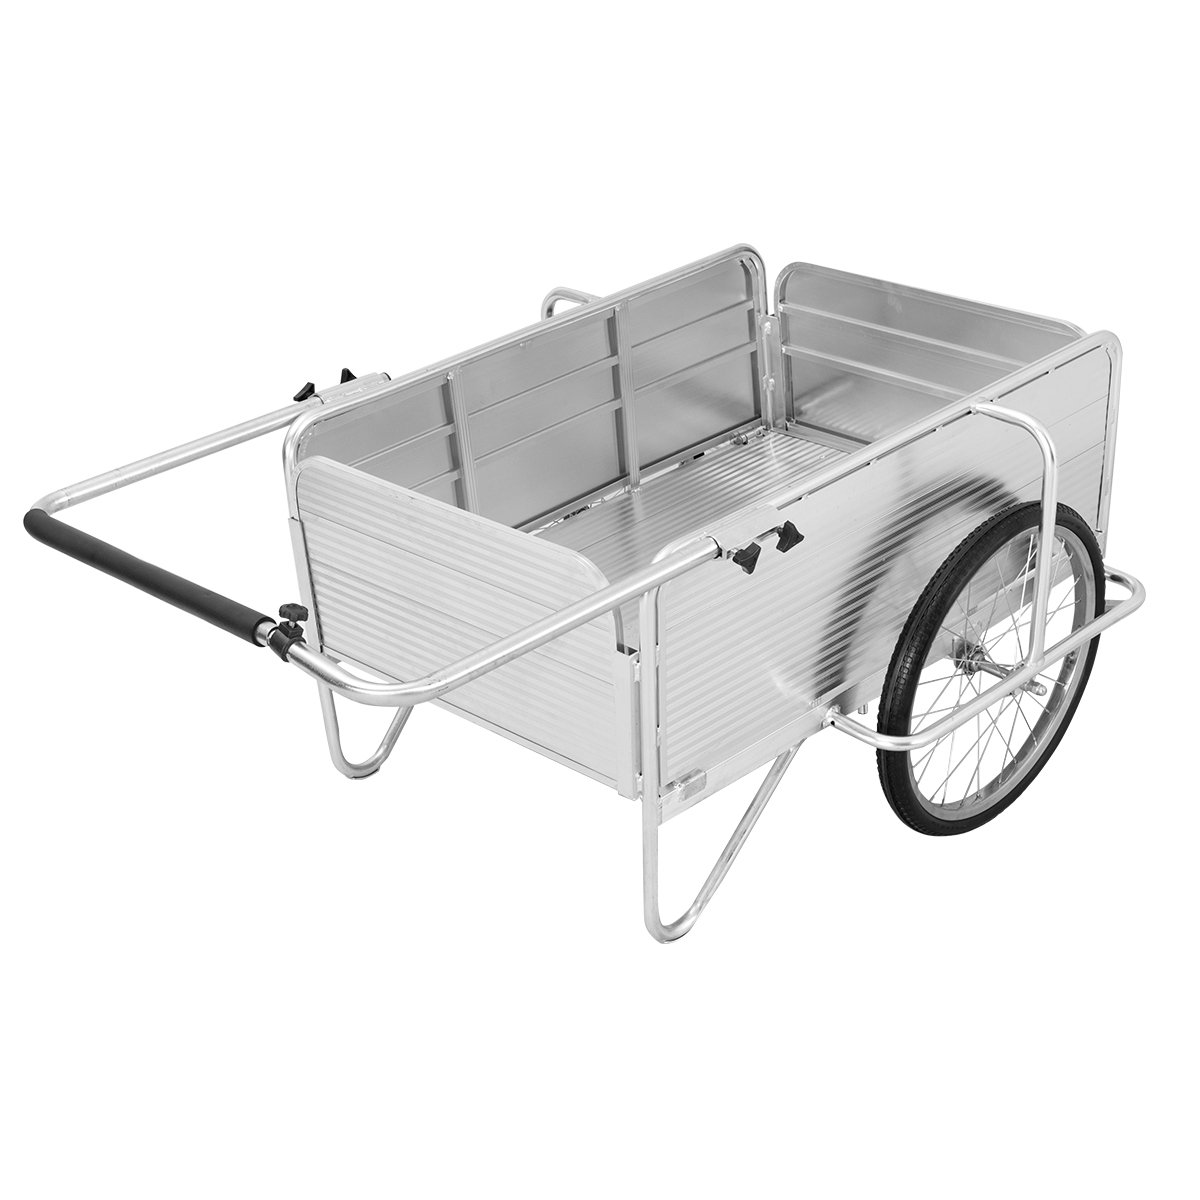 Giantex Folding Utility Cart Garden Trolley Tool Cart Heavy Duty Aluminum Alloy Fold-It Yard Cart (Silver)